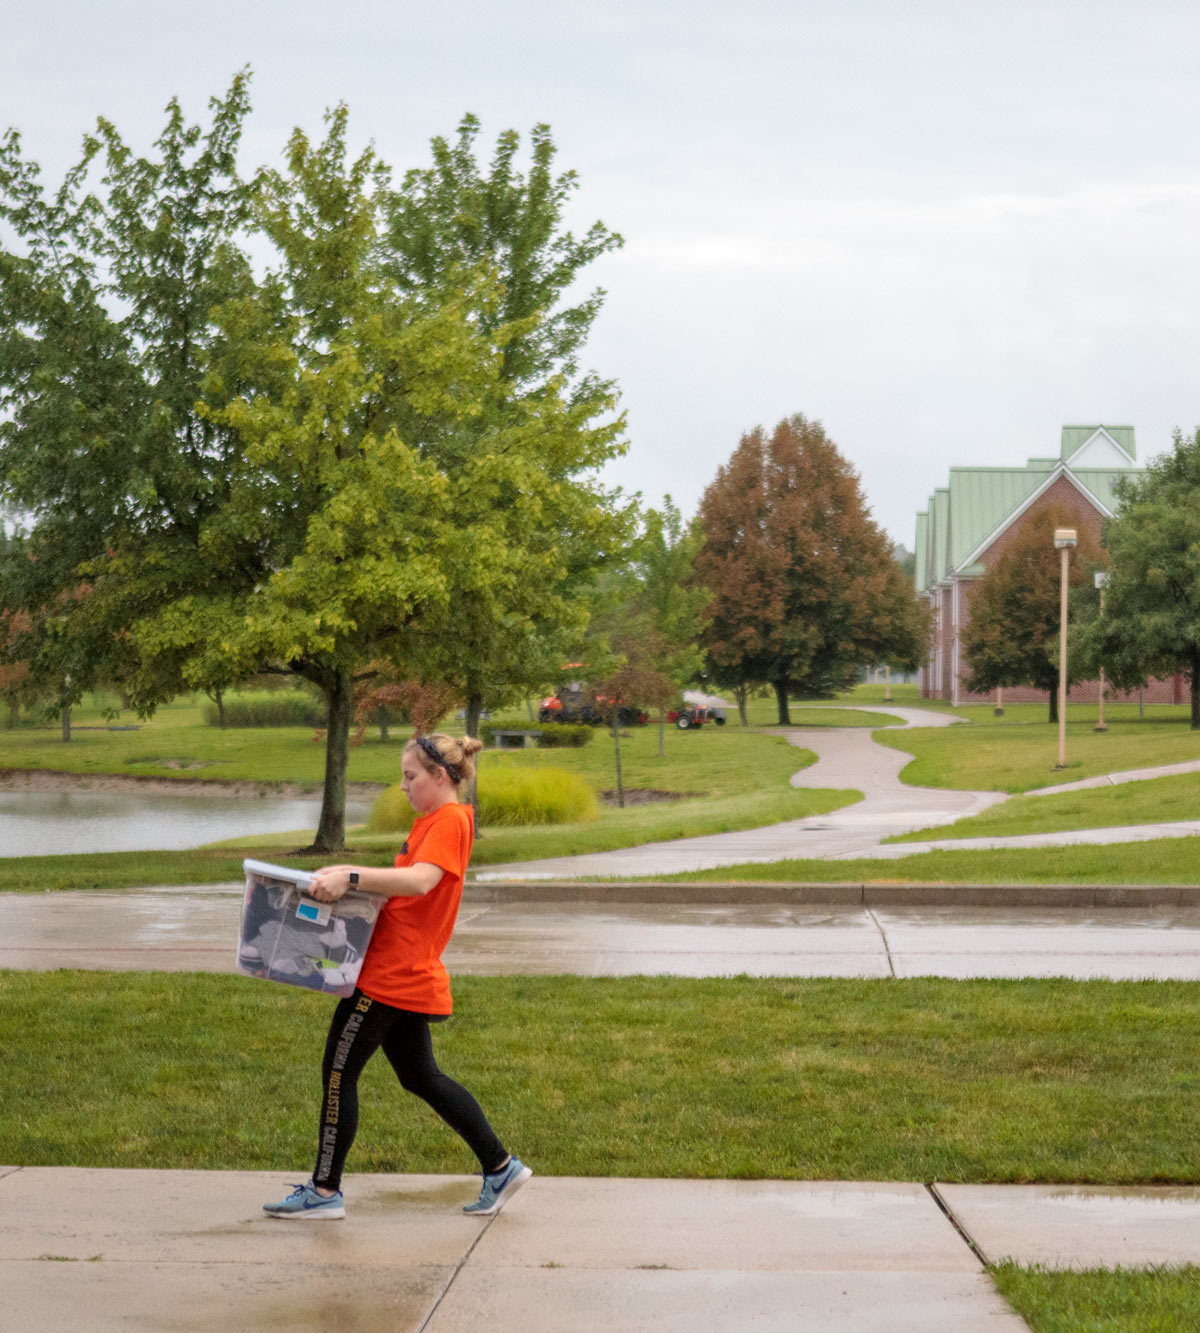 new students moved to the campus of Ohio Northern University to begin the academic year